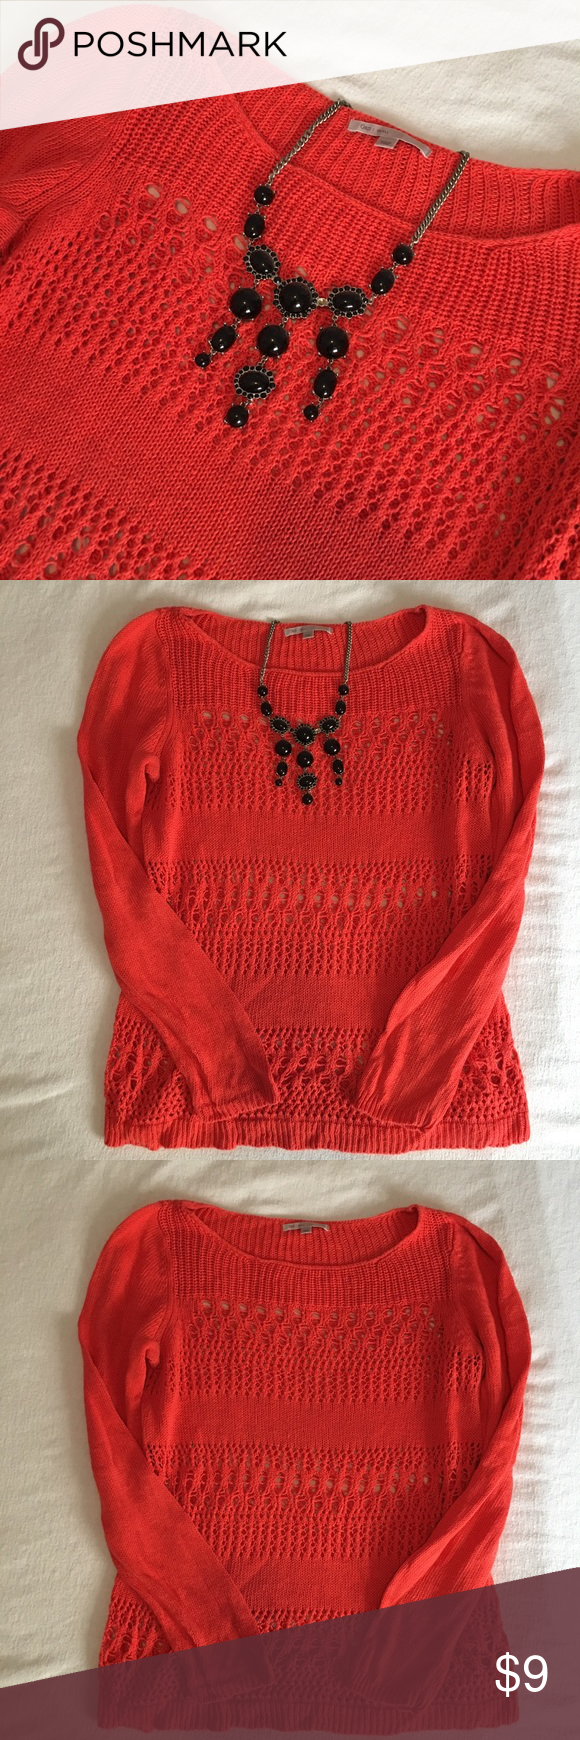 Gap orange sweater size small This is a cute orange sweater from ...